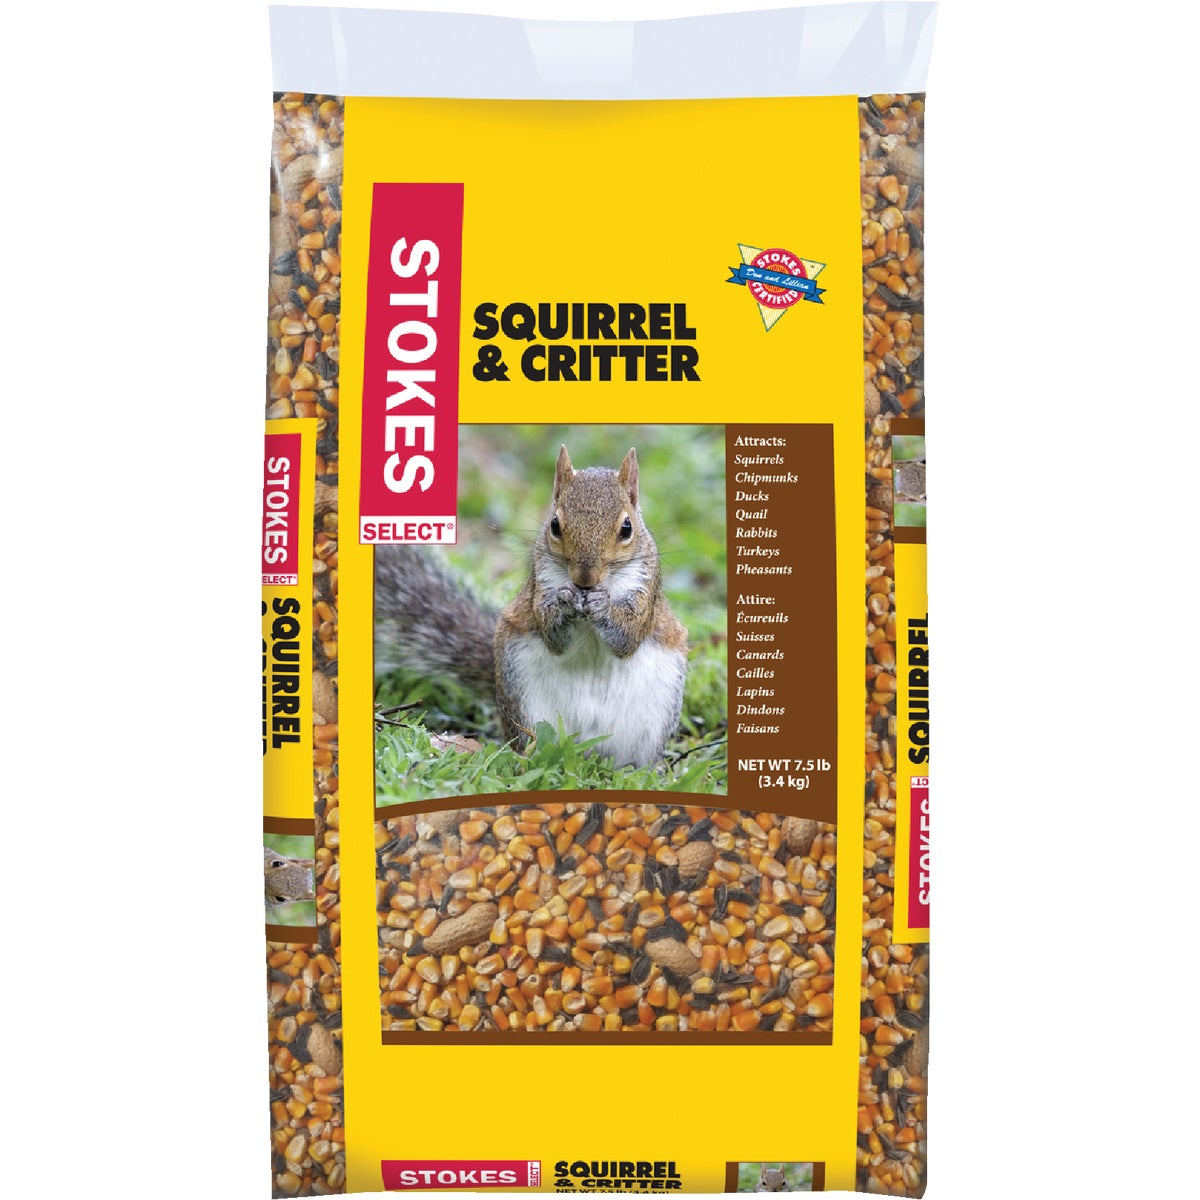 7.5LB CRITTER SNACK - 508 by Red River Commod